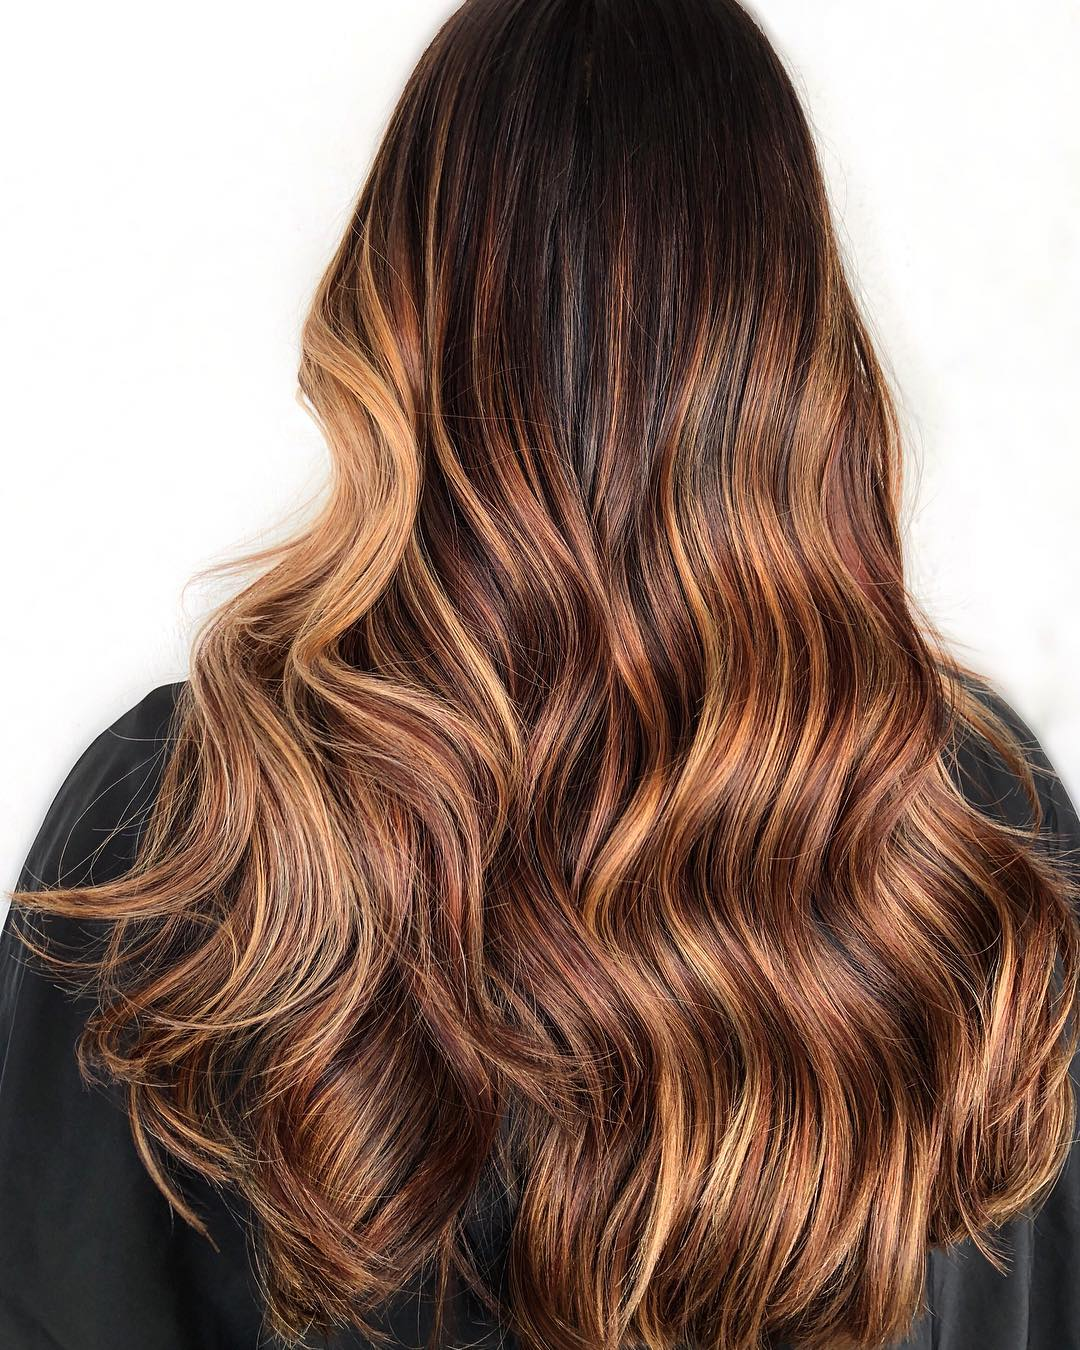 Dark Hair with Effortless caramel Highlights